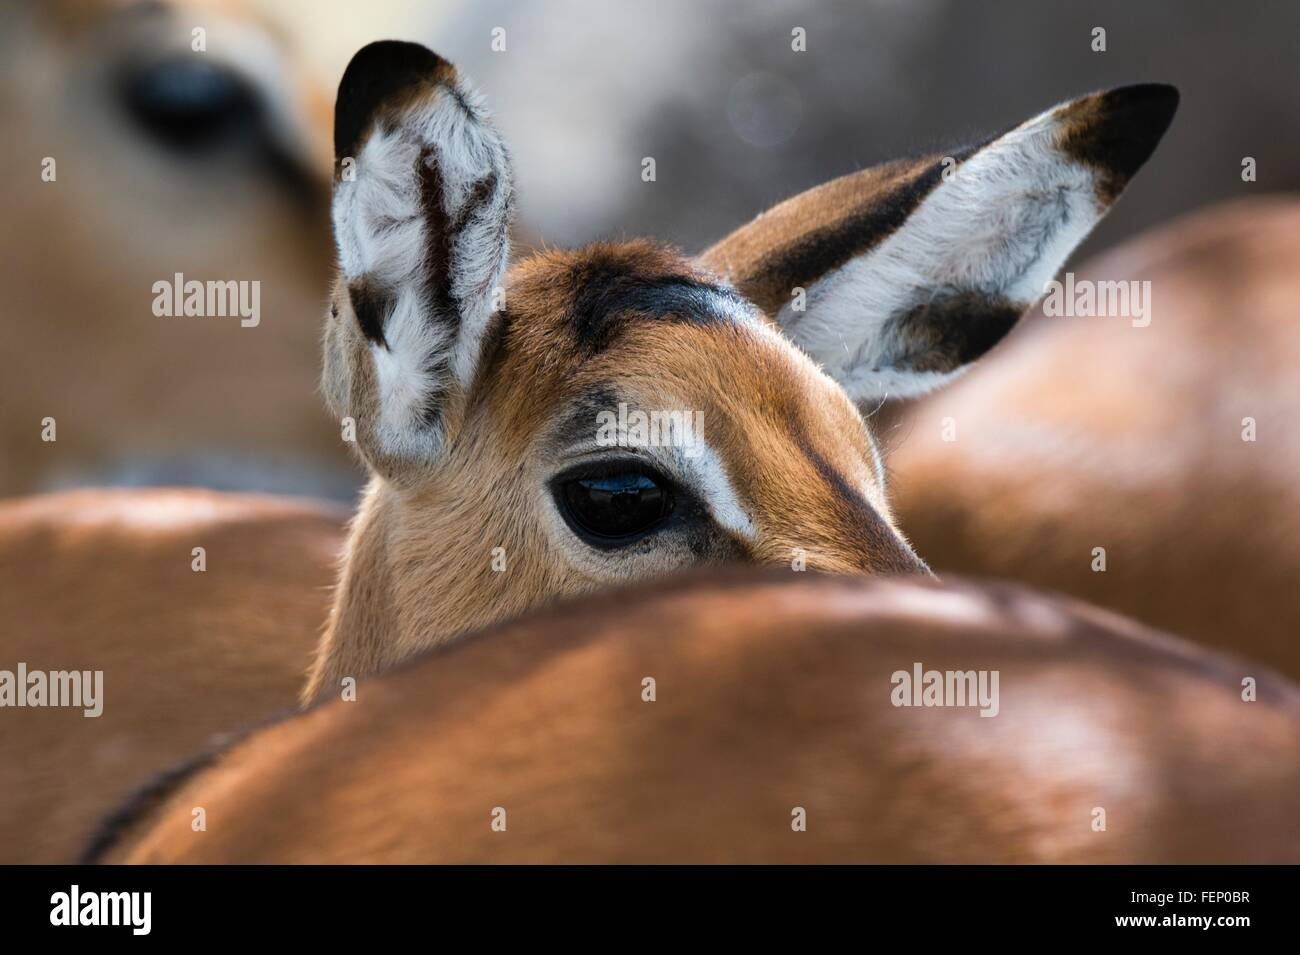 Impala (Aepyceros melampus), Lake Nakuru National Park, Kenya Stock Photo